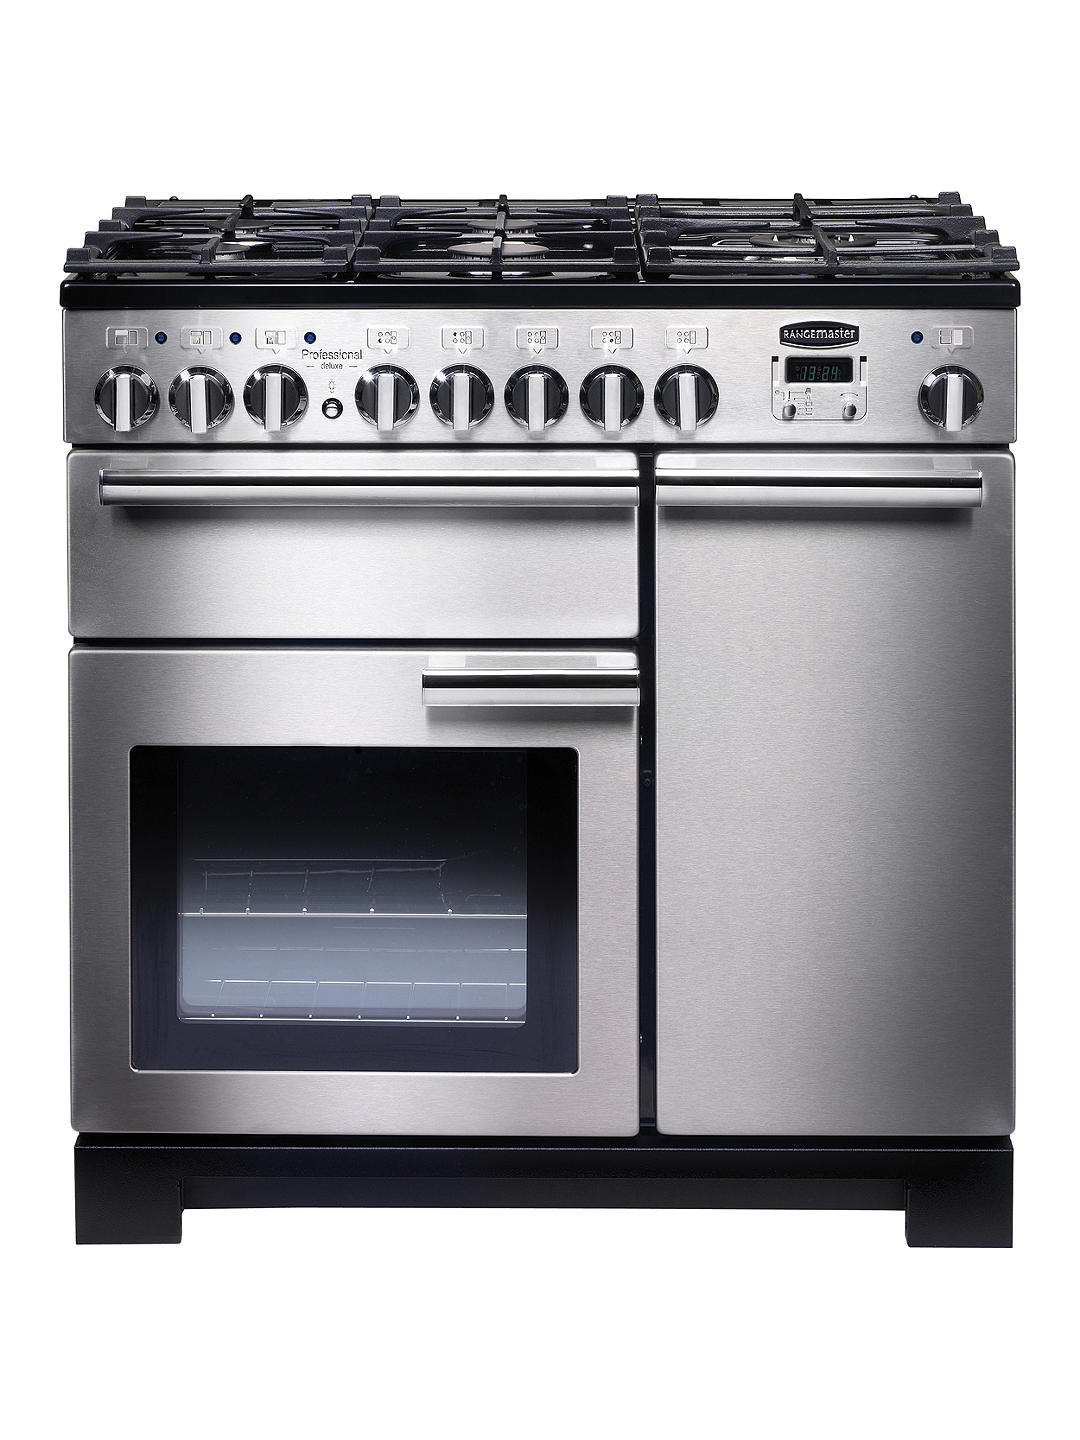 Buy Rangemaster Professional Deluxe 90 Dual Fuel Range Cooker, Stainless Steel/Chrome Trim Online at johnlewis.com